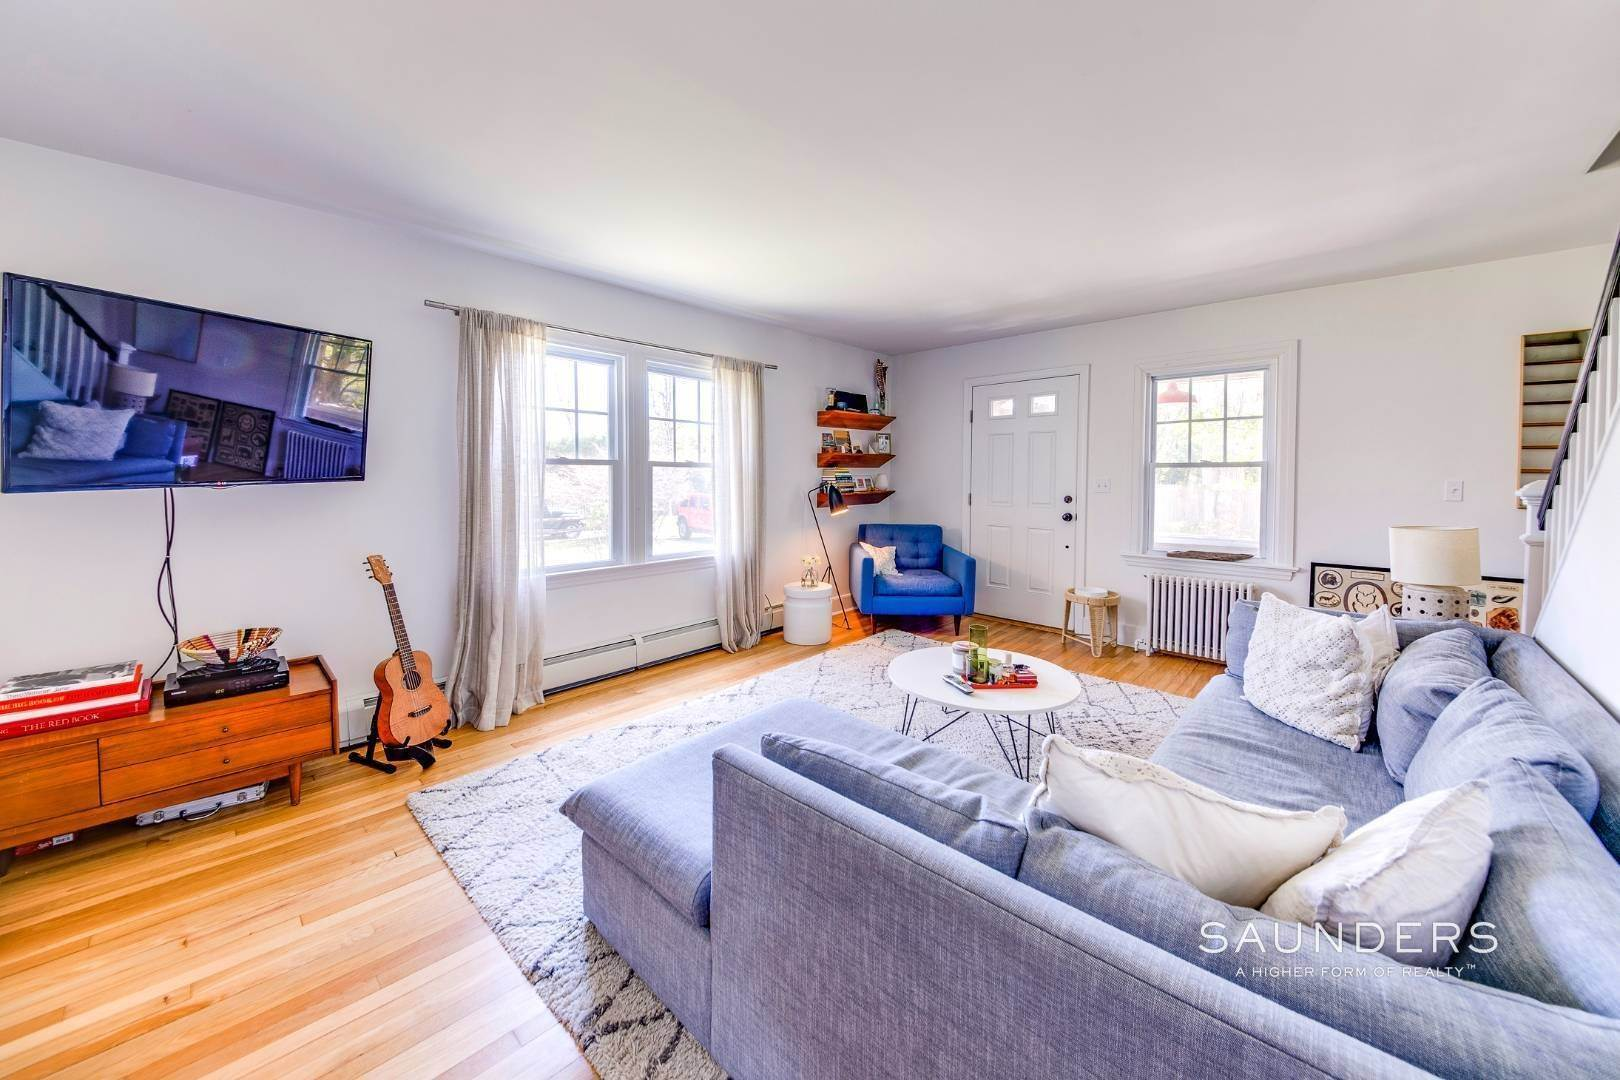 5. Single Family Homes for Sale at East Hampton Cottage On 1.17 Acres 43 Miller Lane West, East Hampton, East Hampton Town, NY 11937